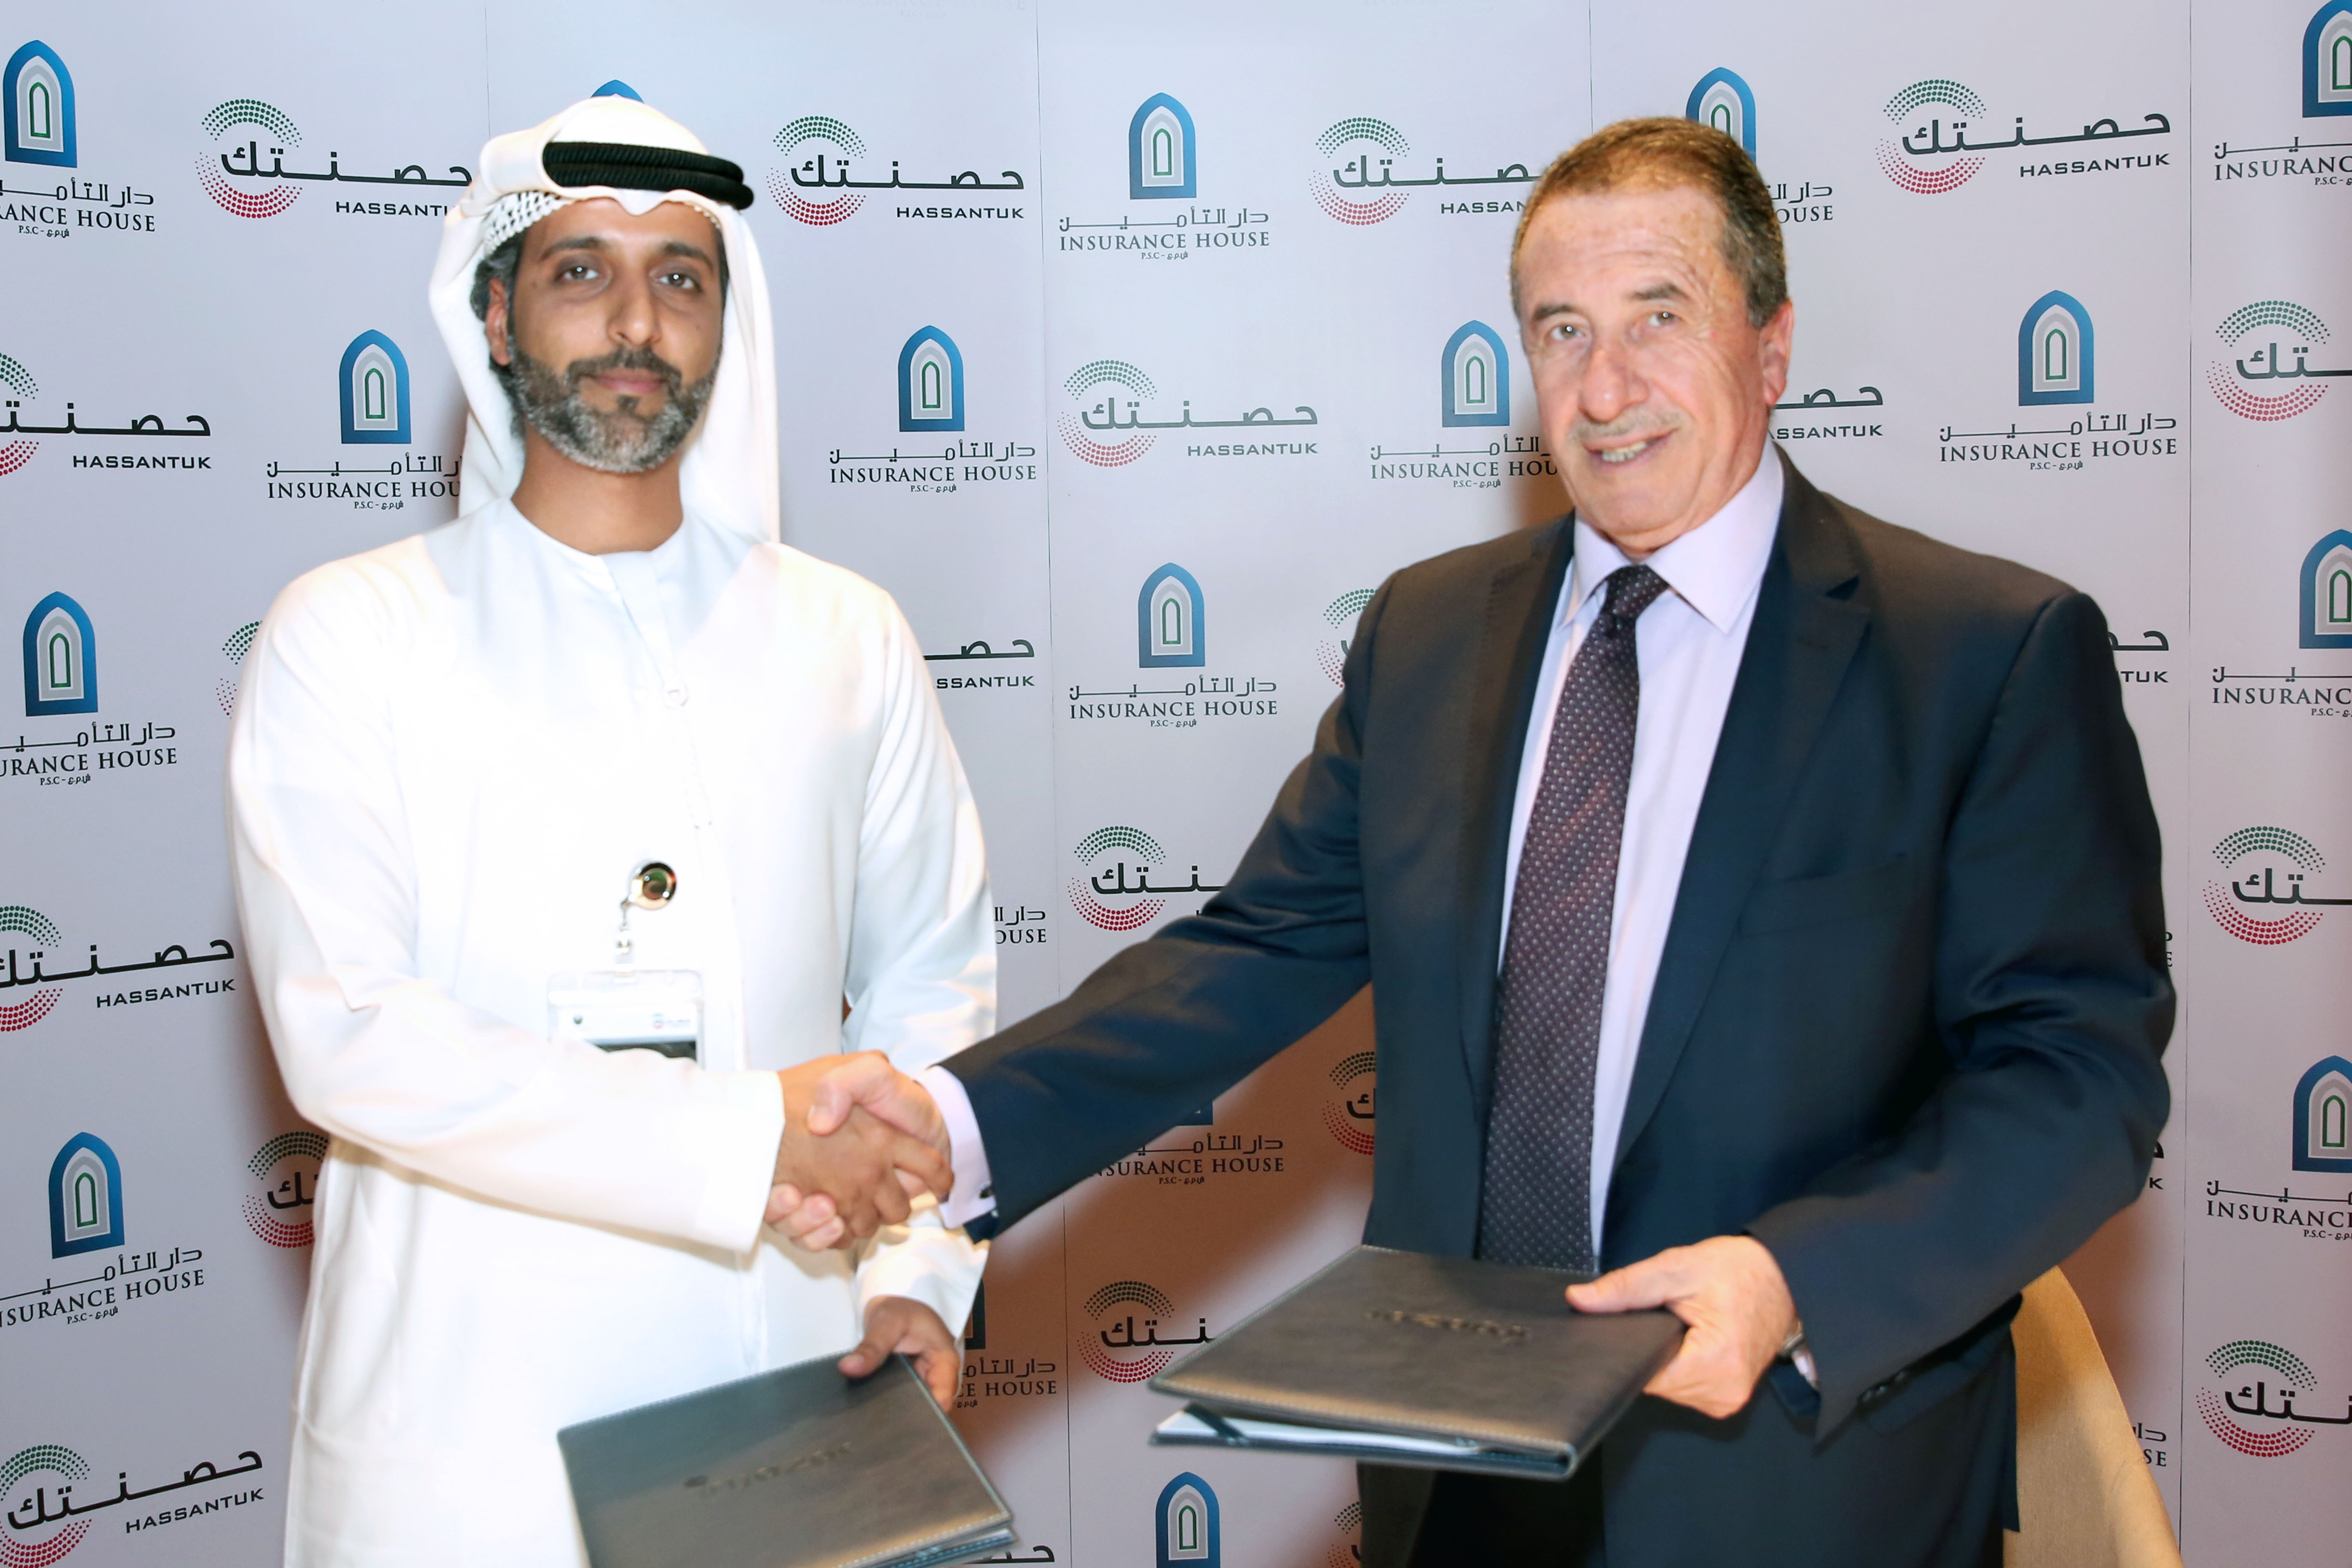 Insurance House partners with Injazat Data Systems to participate in Hassantuk